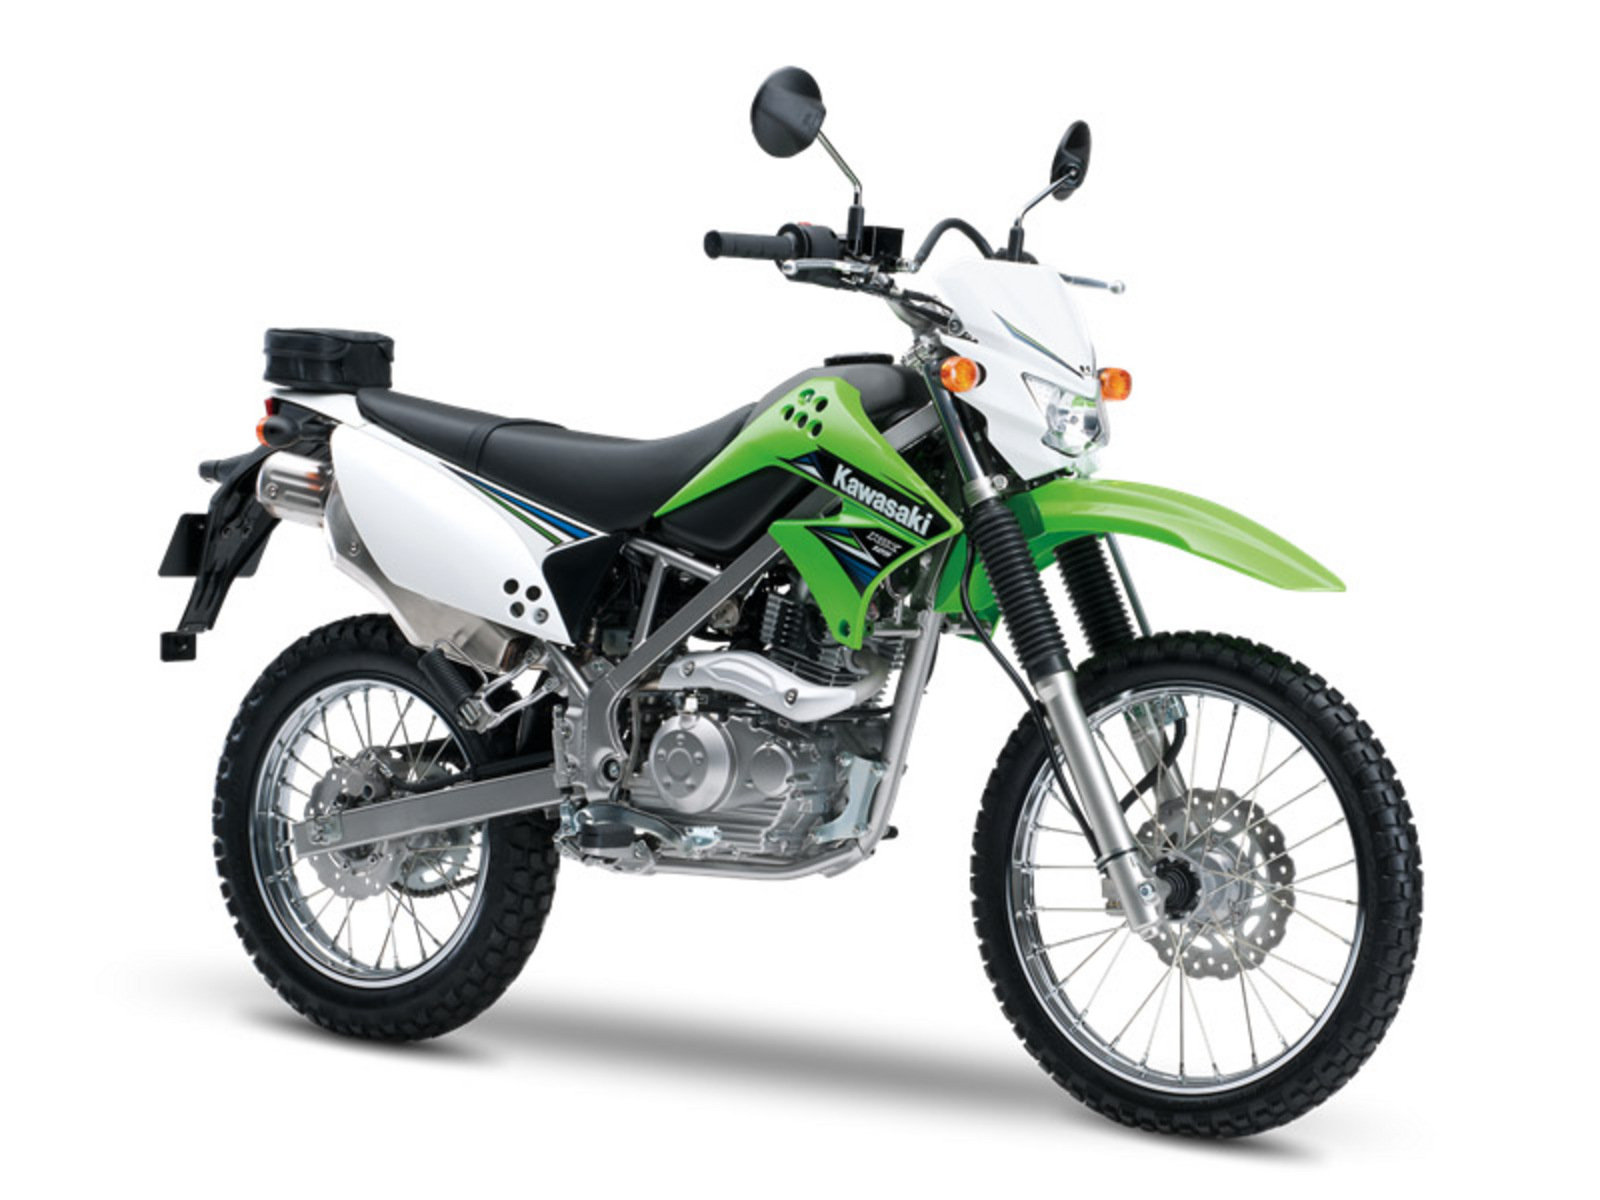 2014 kawasaki klx125 review top speed. Black Bedroom Furniture Sets. Home Design Ideas